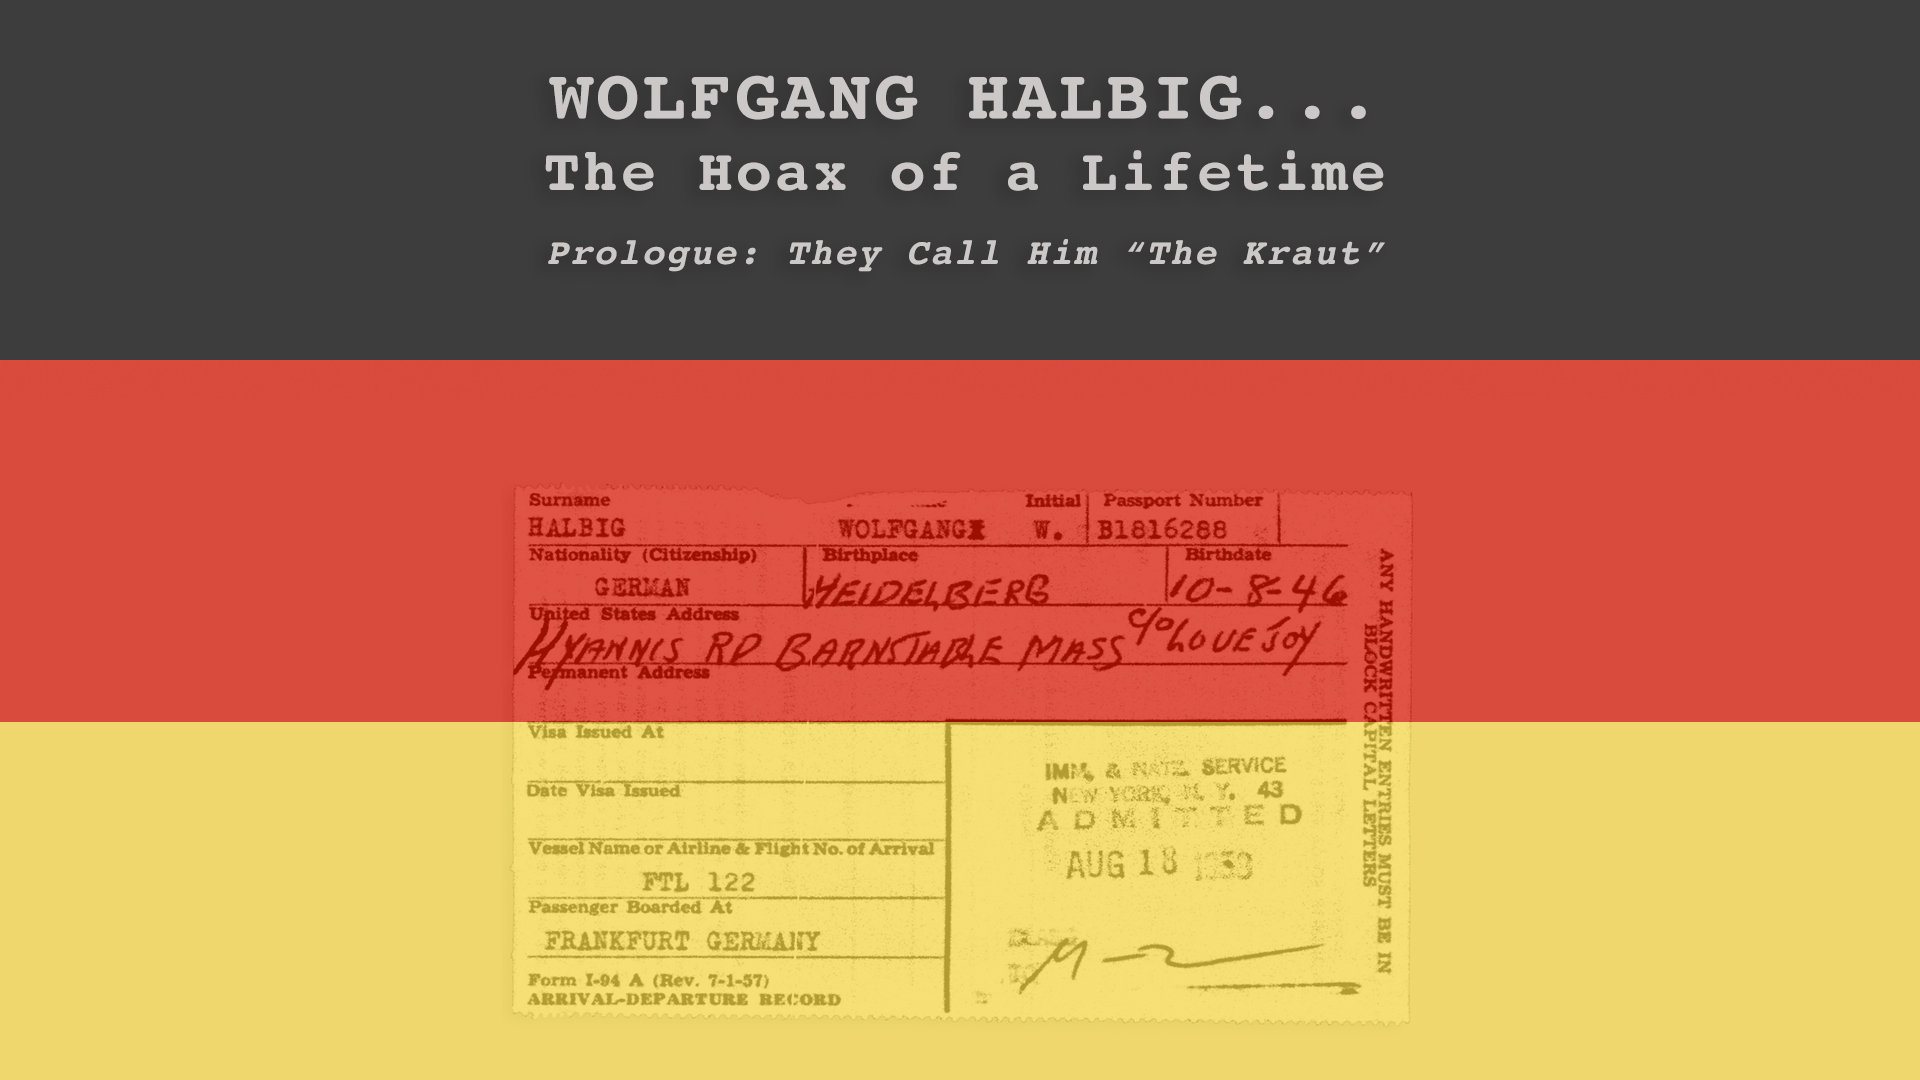 "Wolfgang Halbig - The Hoax of a Lifetime - Prologue - They Call Him ""The Kraut"""